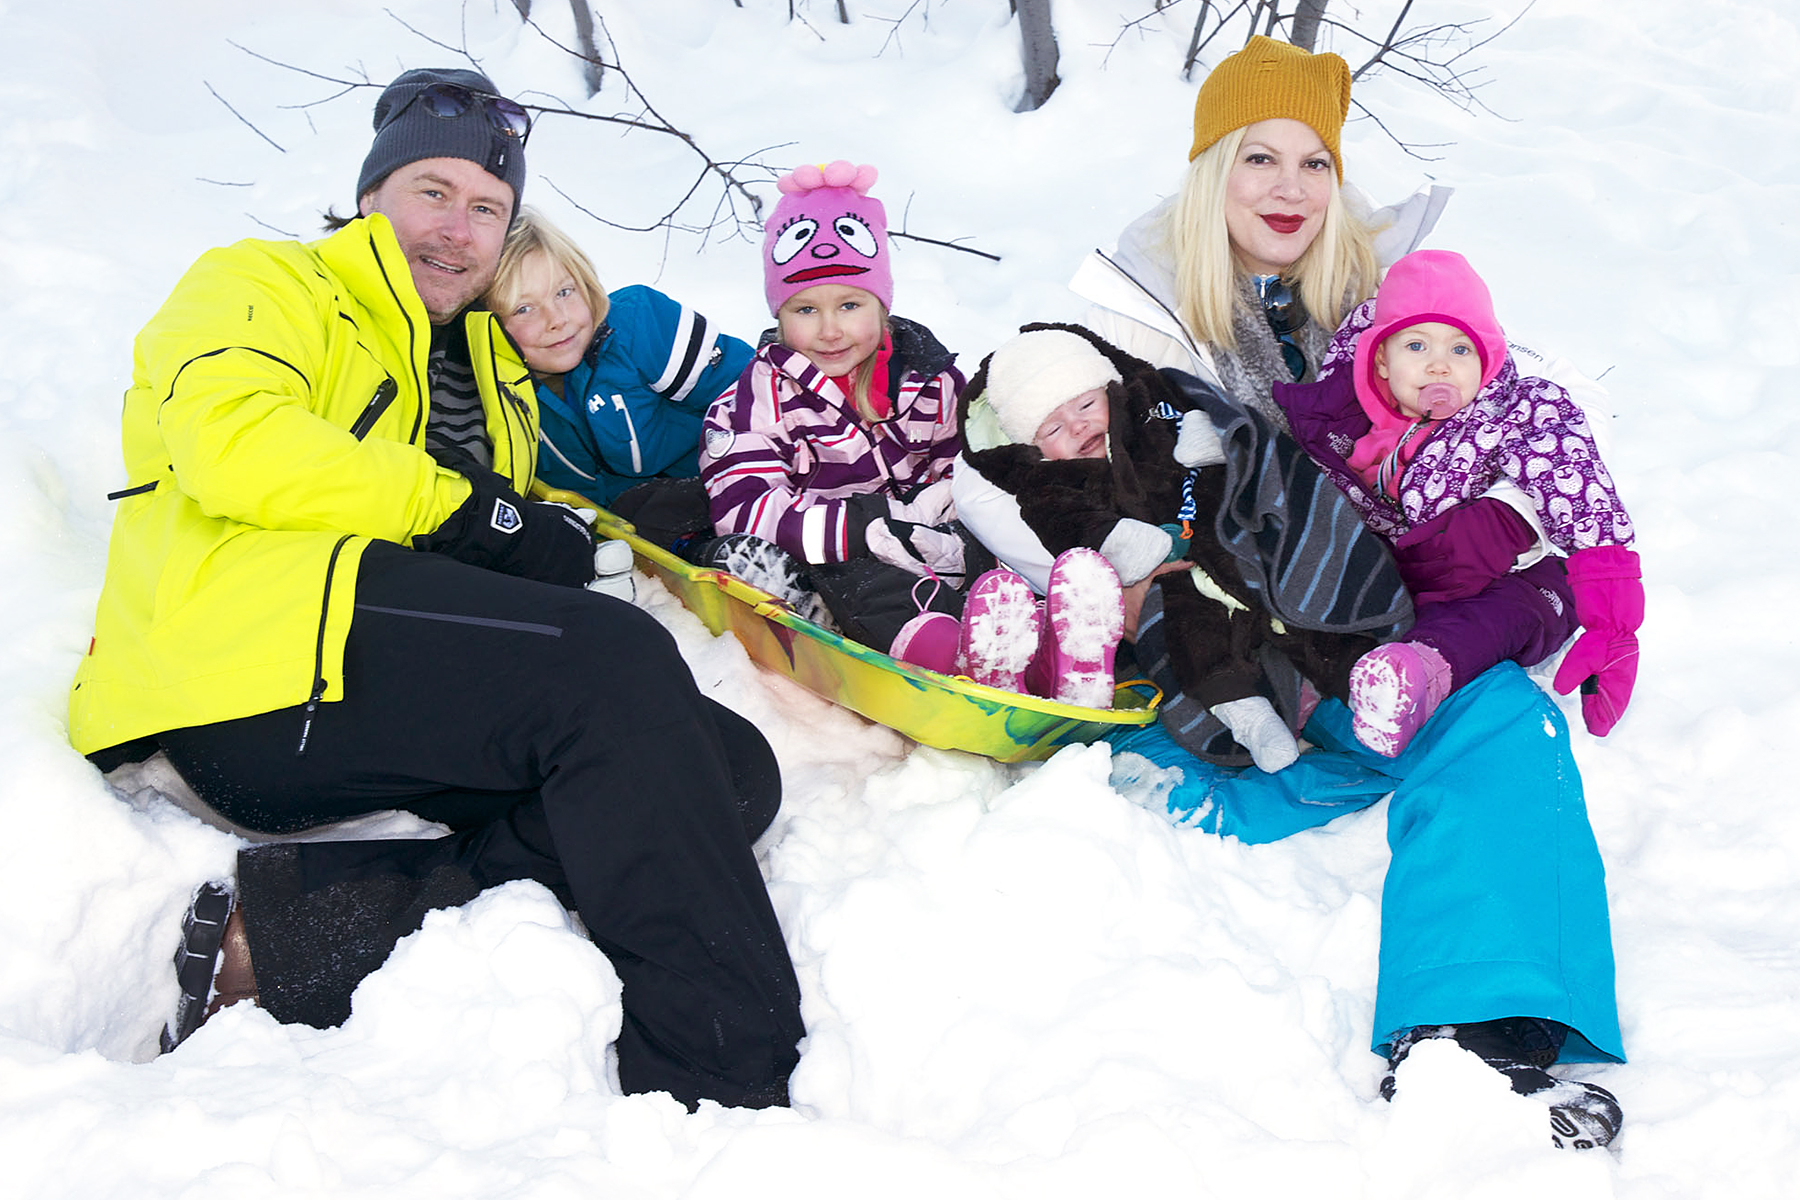 Tori Spelling Dean McDermott Liam Stella Hattie Finn - Spelling took a camera along on her family vacation at The Village at Squaw Valley, in Lake Tahoe, California, in January 2013. It looks like the couple and their four kids had a lot of fun in the snow.